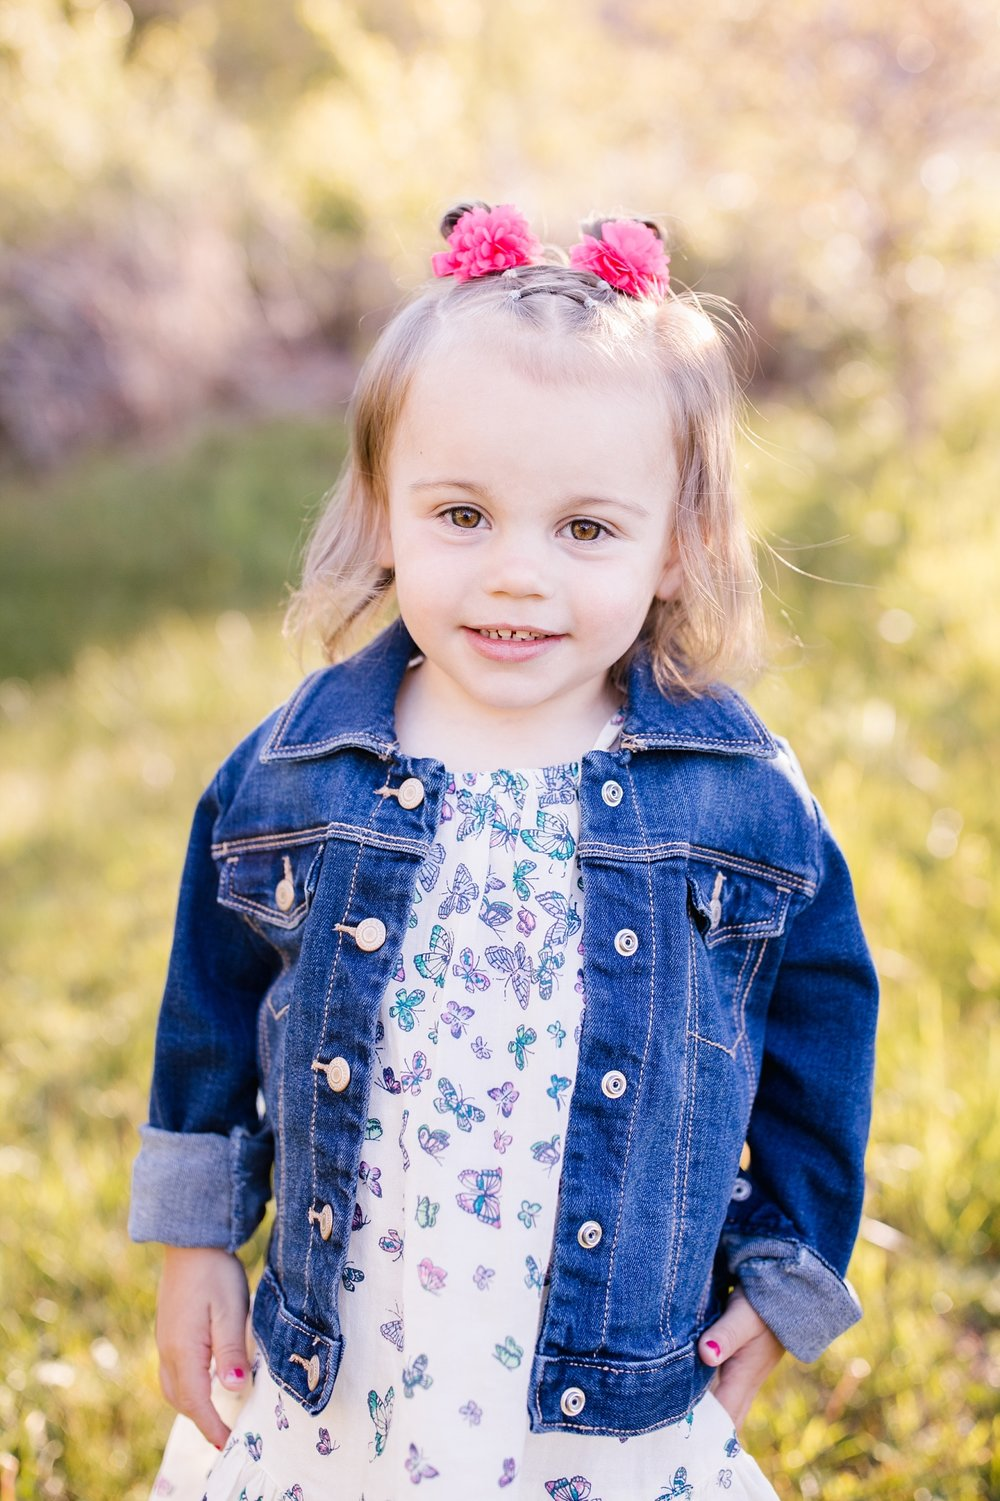 Bagley-72_Lizzie-B-Imagery-Utah-Family-Photographer-Central-Utah-Extended-Family-Session.jpg